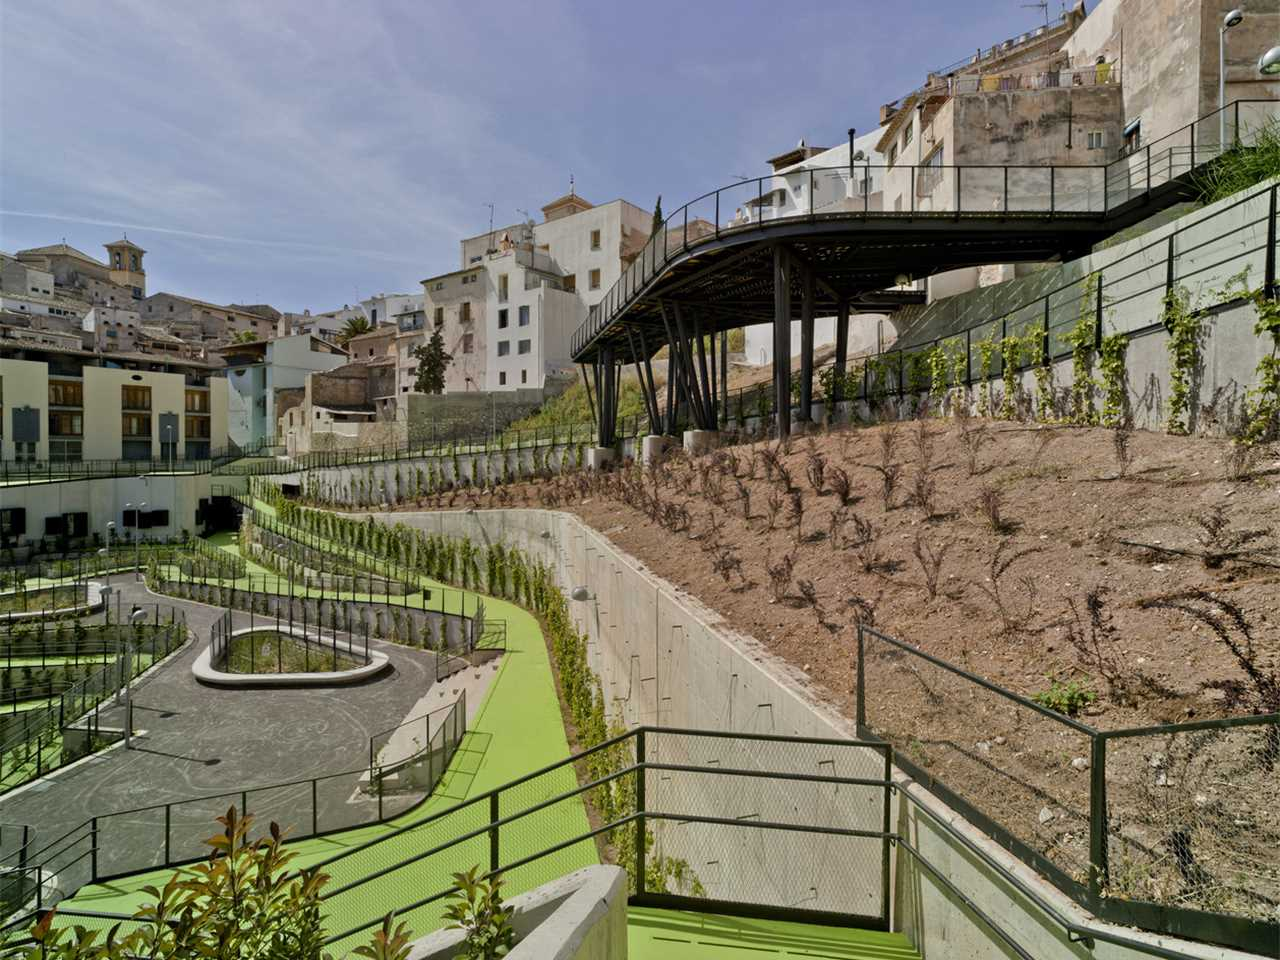 Project update June 2017 – The mysterious story of the garden that makes water, Cehegín, Spain